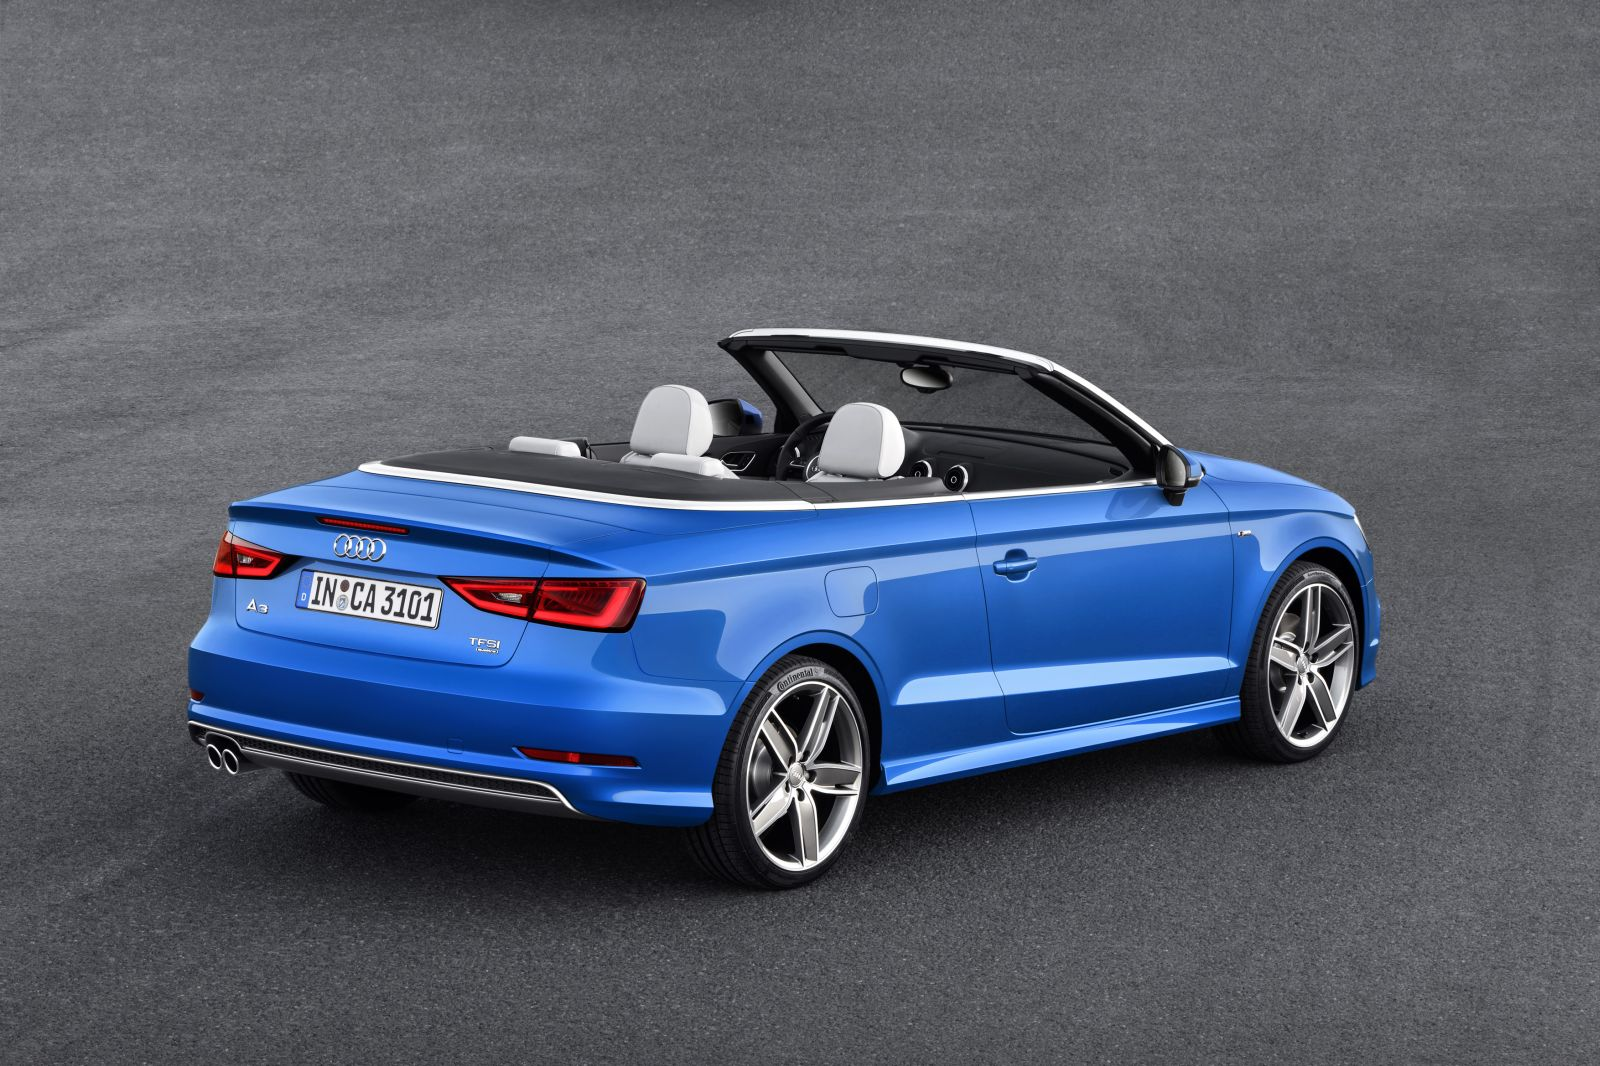 a4e gallery audi a3 neu audi a3 8v cabrio. Black Bedroom Furniture Sets. Home Design Ideas